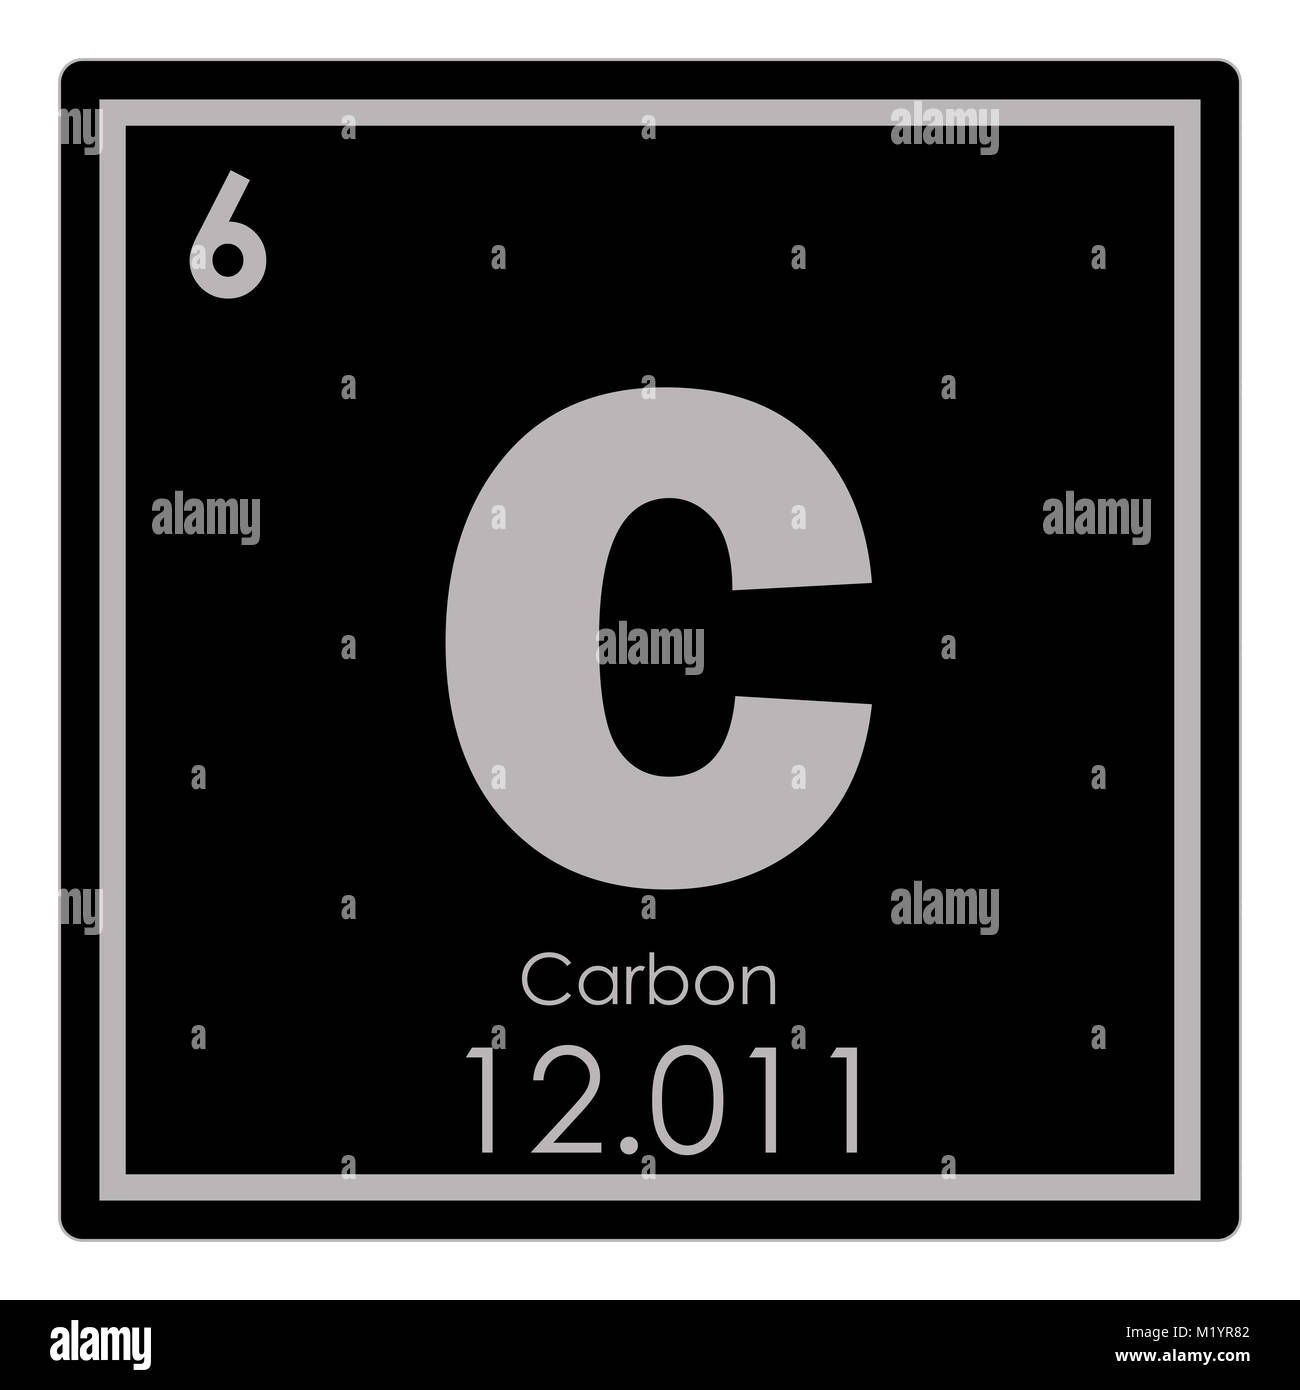 carbon chemical element periodic table science symbol